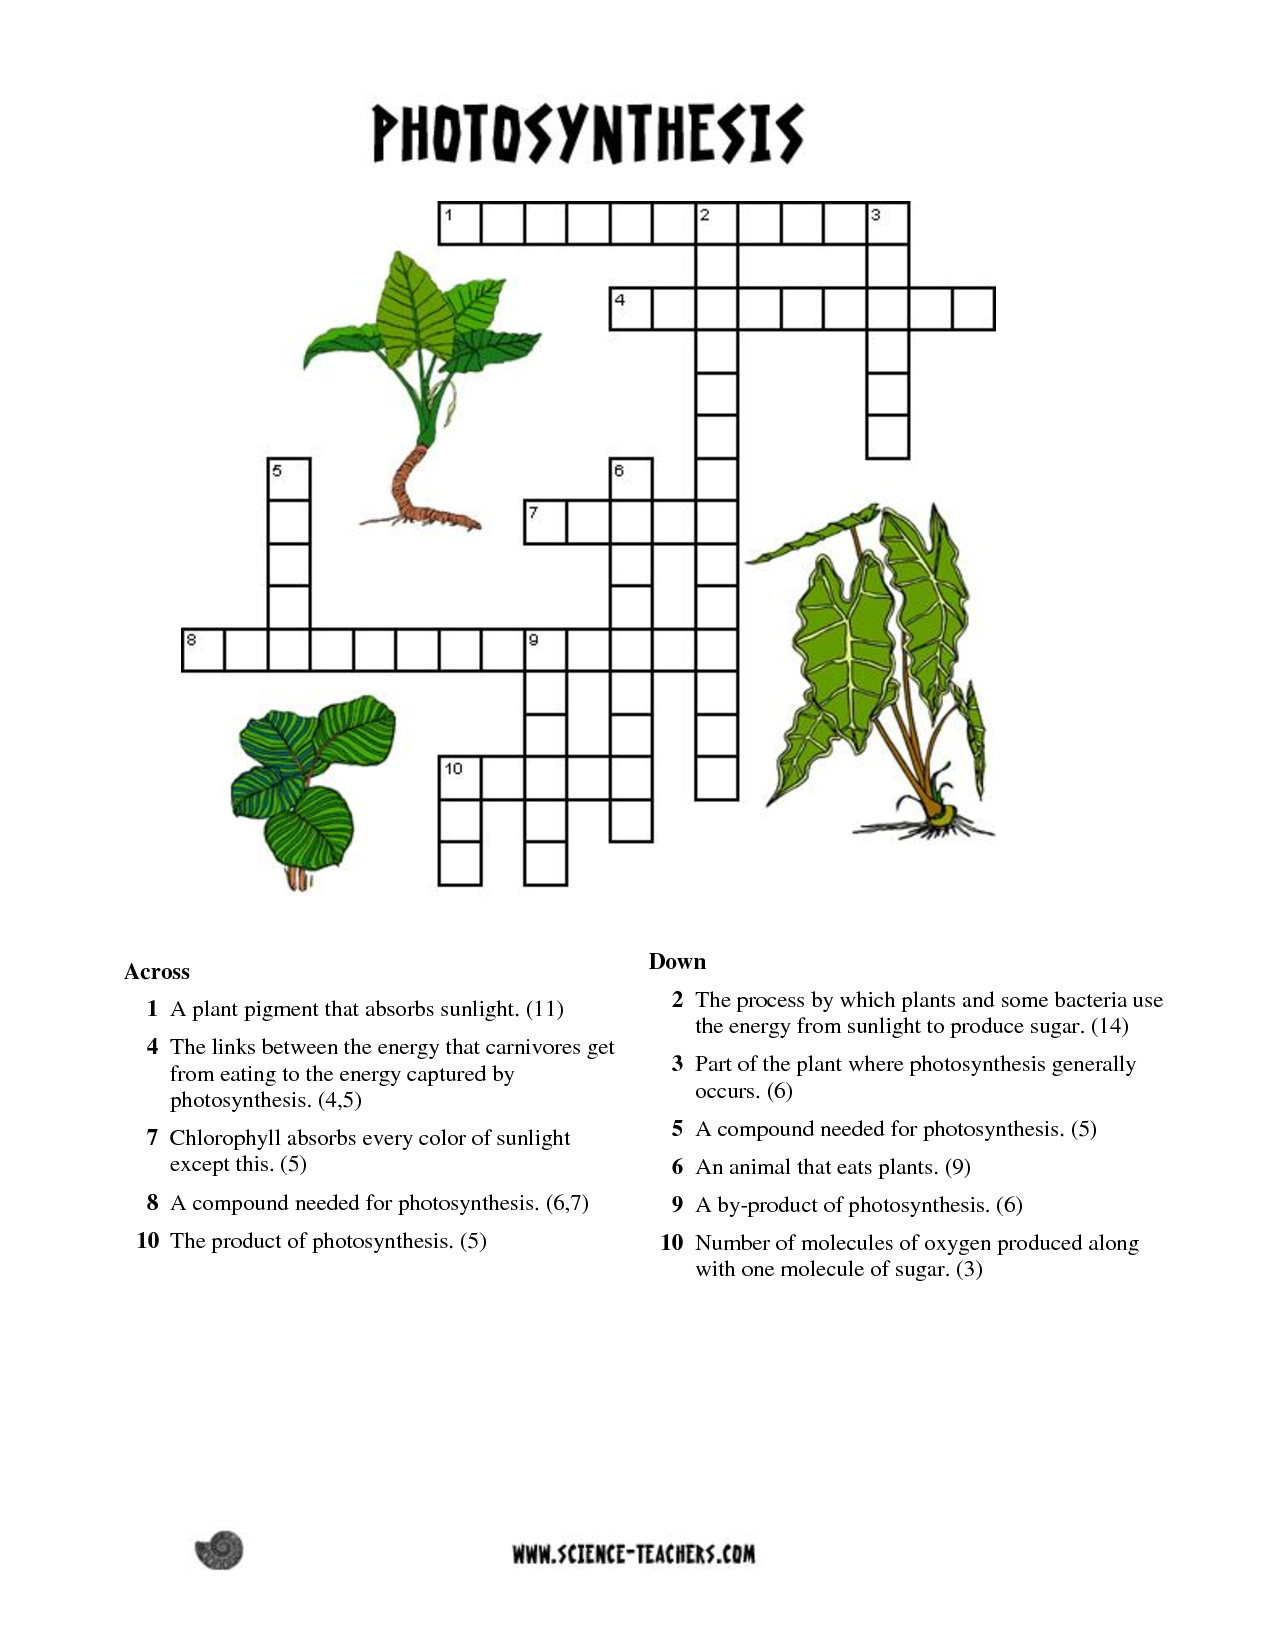 printable photosynthesis crossword Bing Images – Photosynthesis Review Worksheet Answers